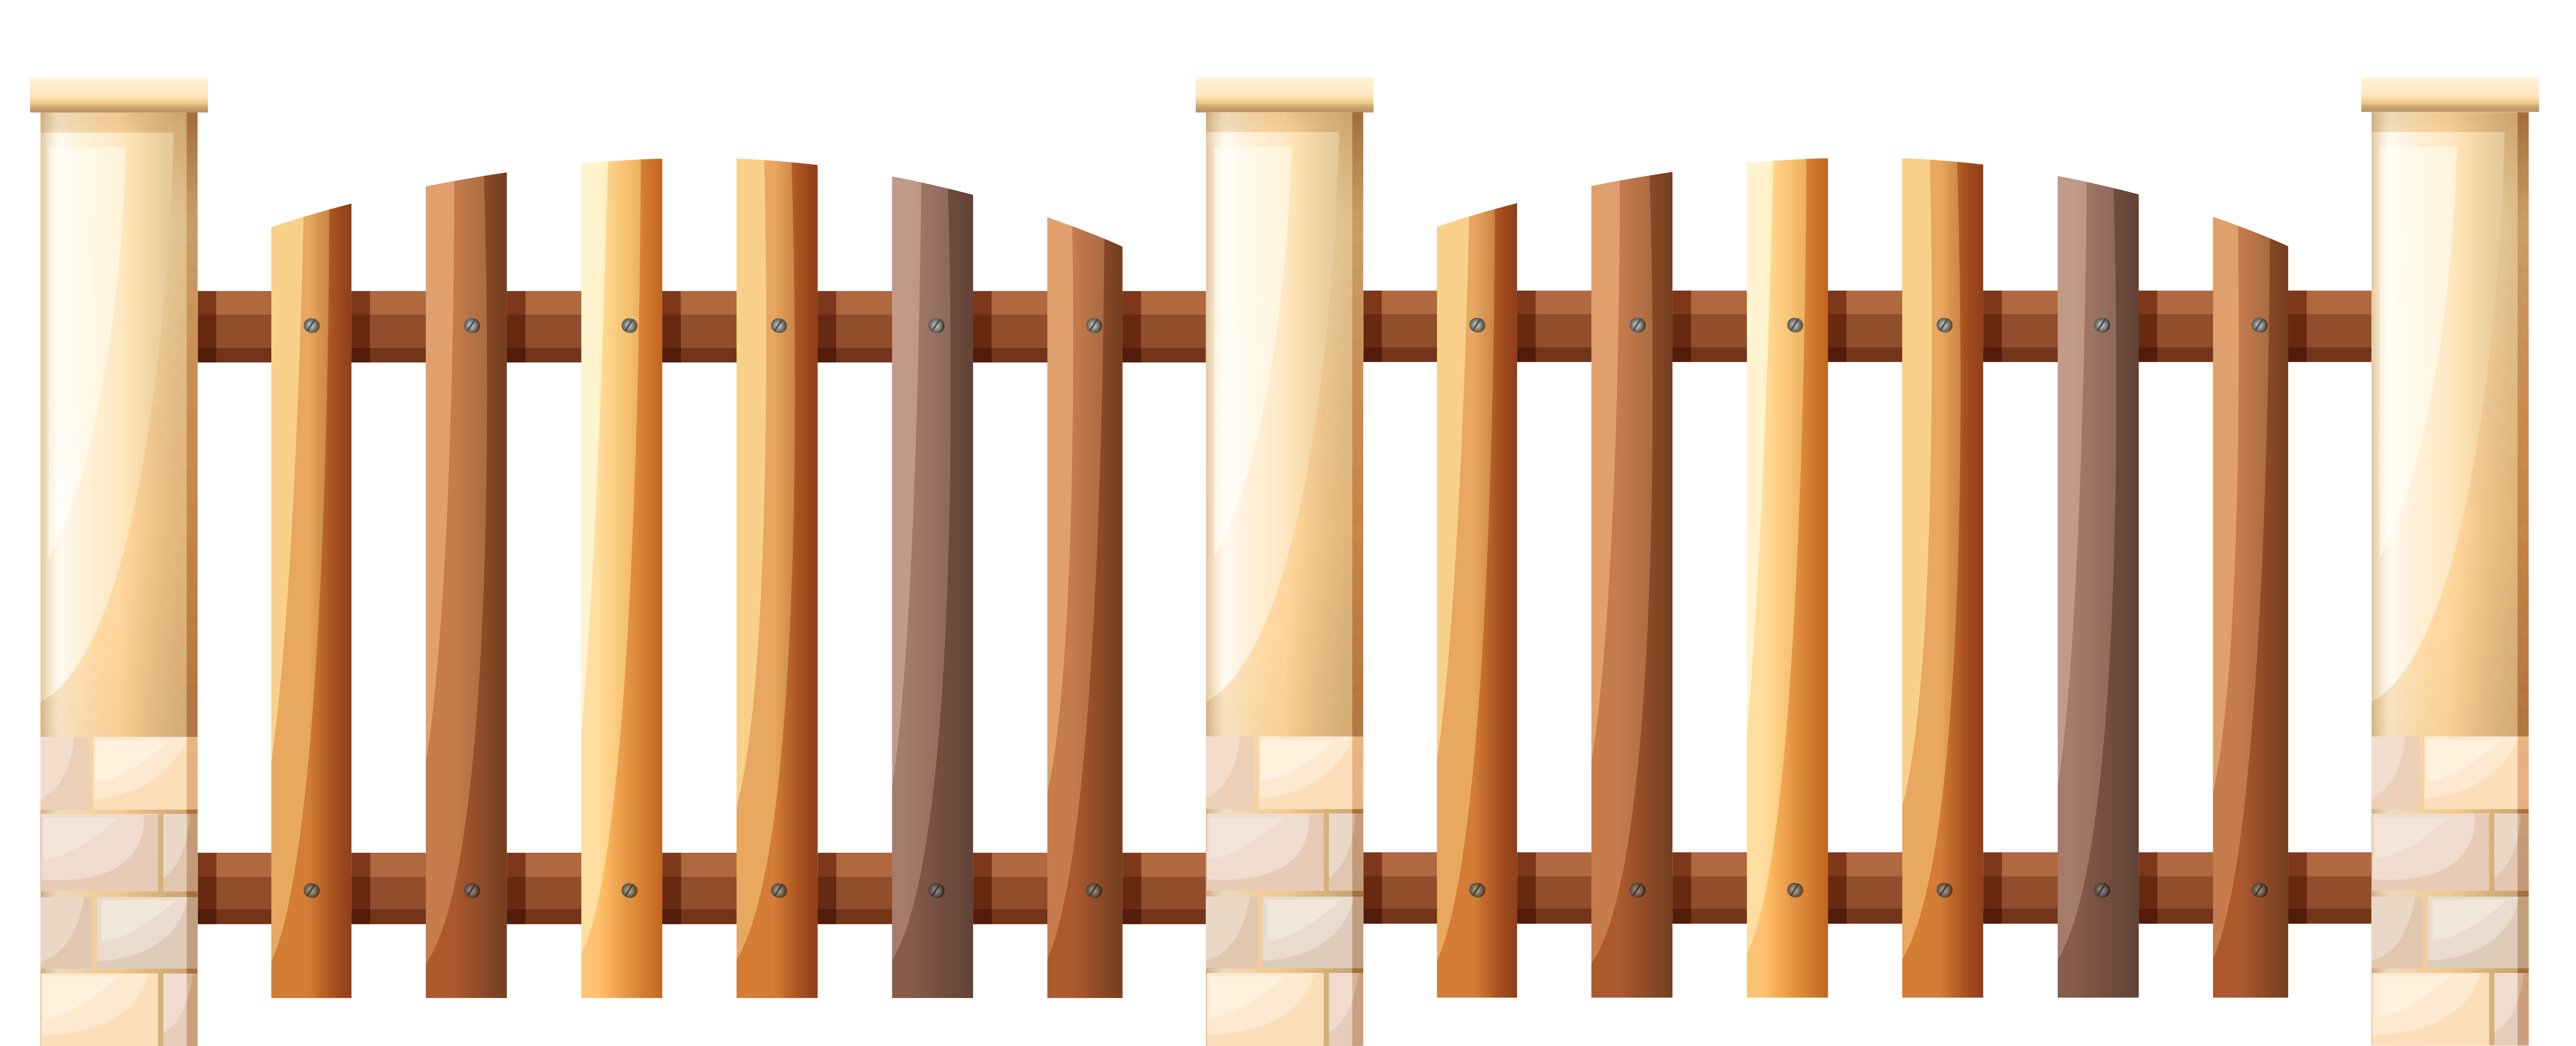 Yard clipart transparent. Wooden fence png gallery